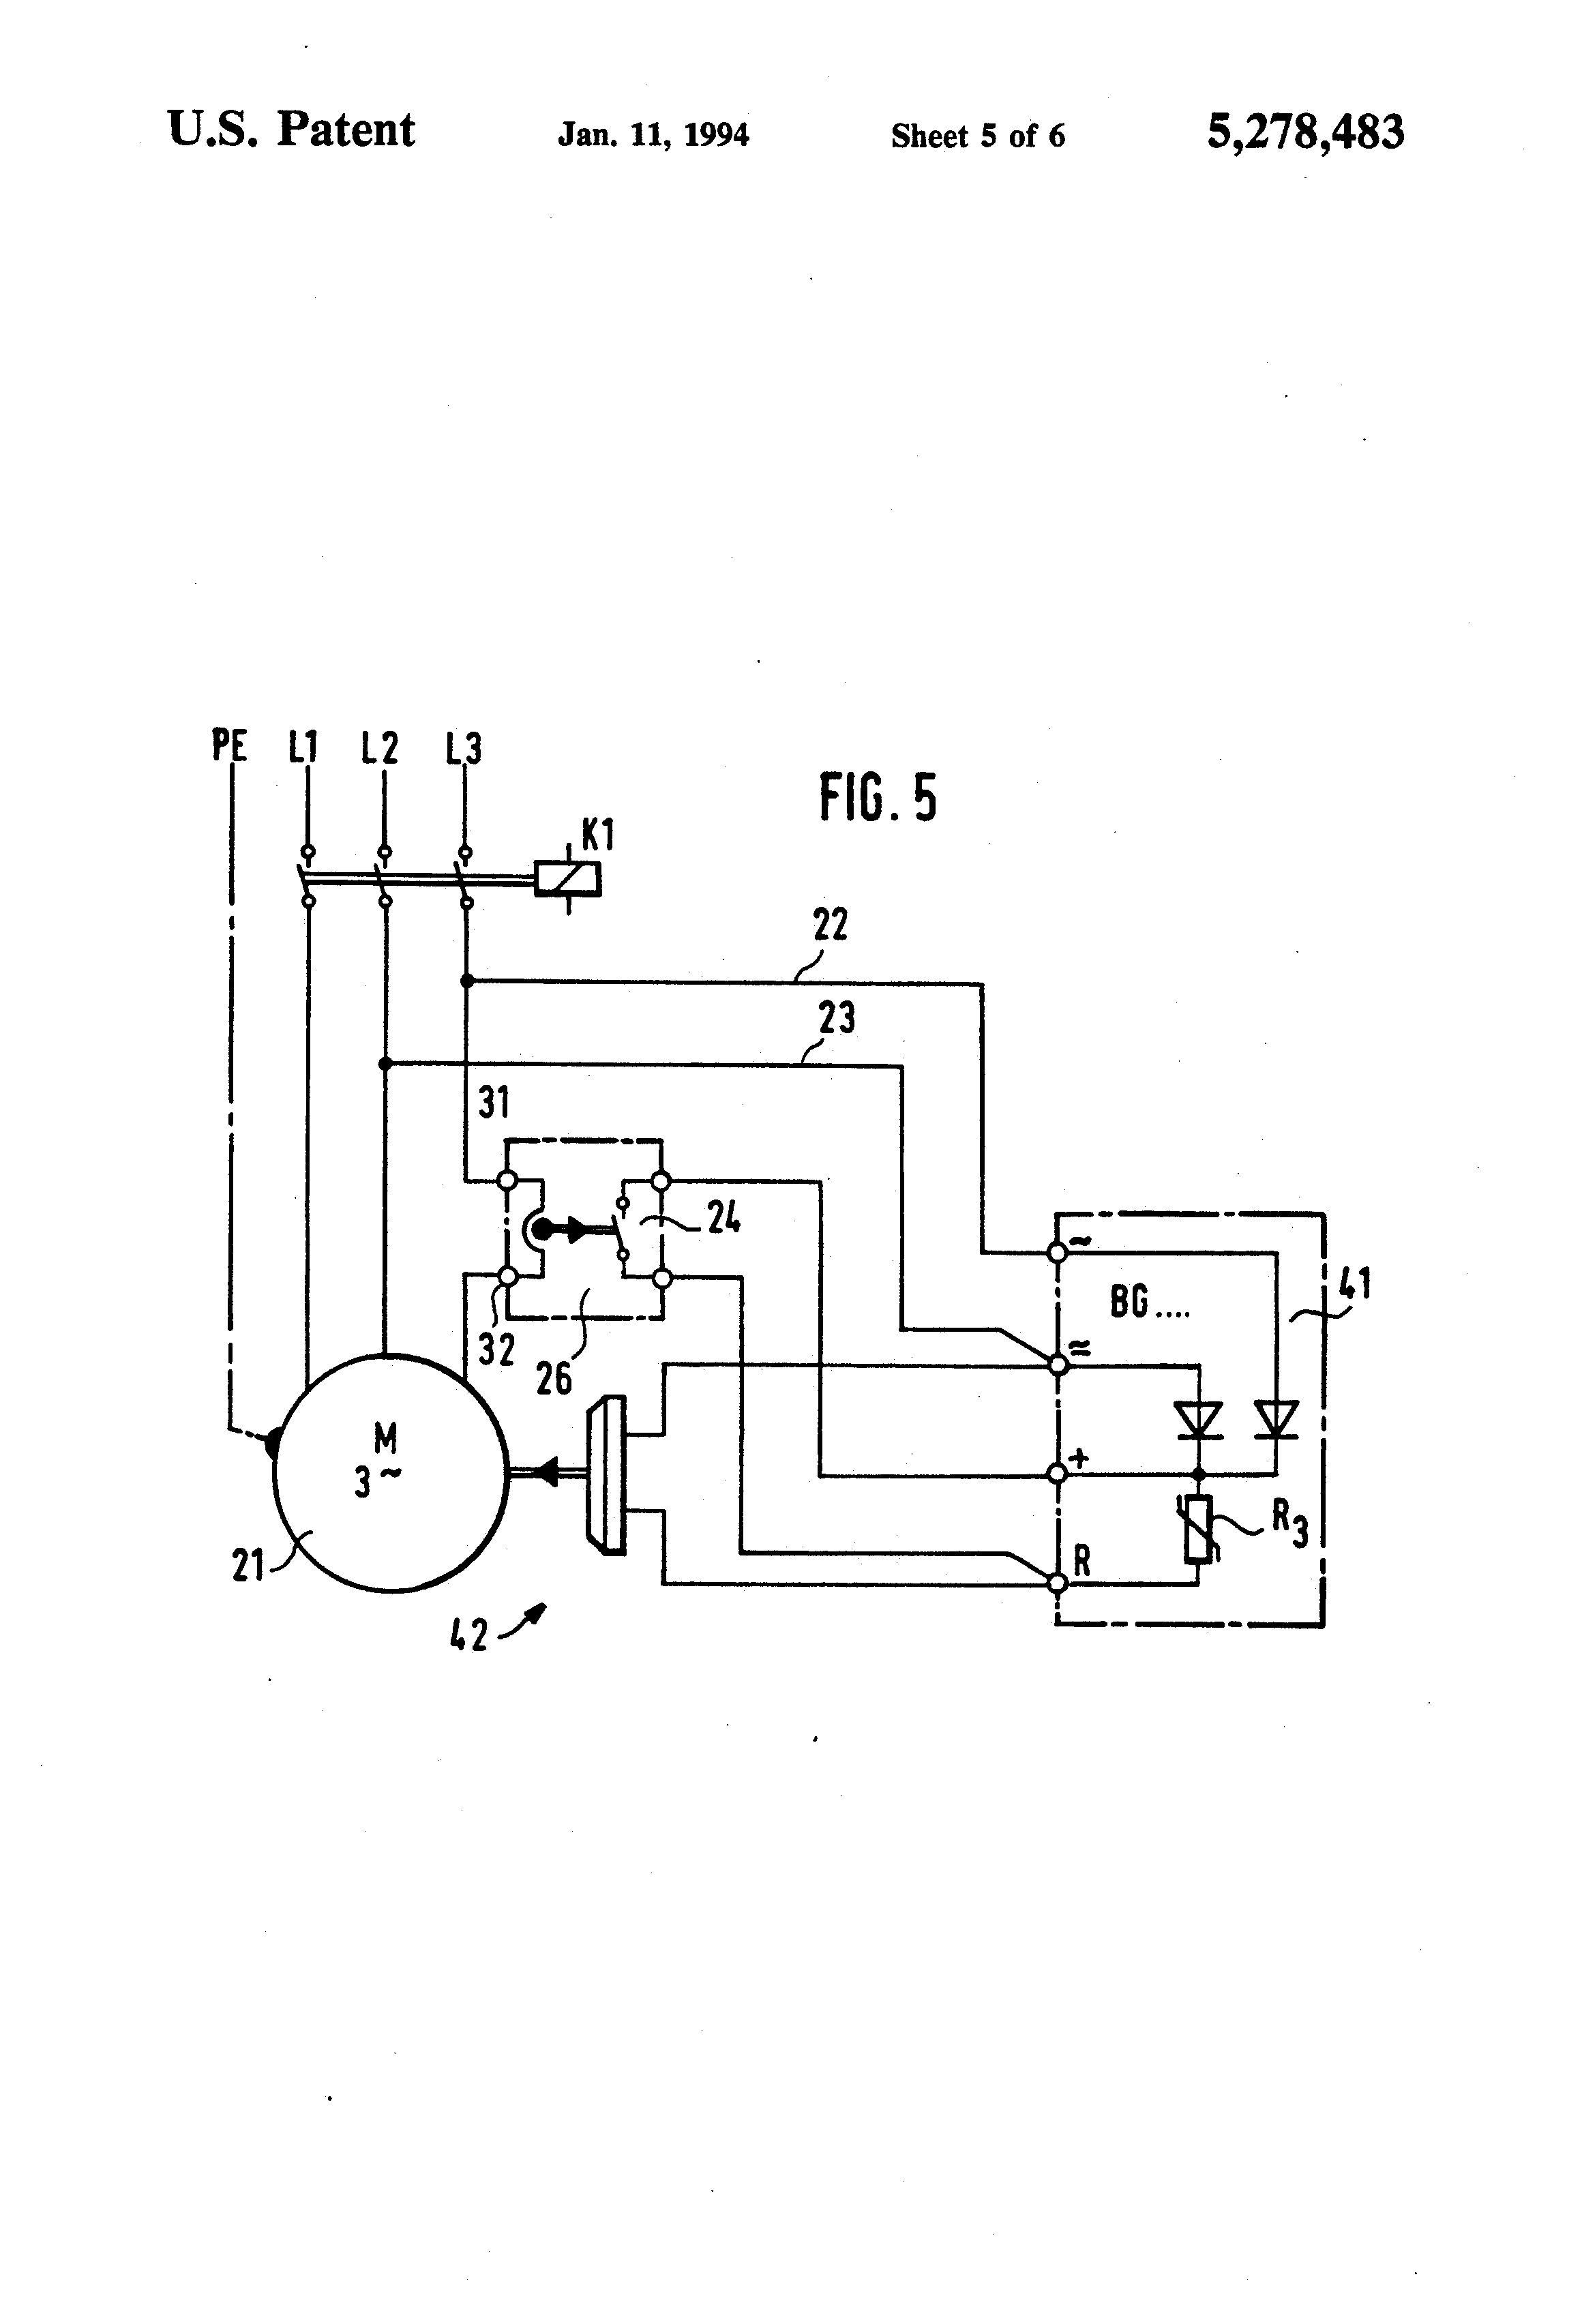 sew eurodrive motor wiring get free image about wiring diagram rh abetter pw Simple Wiring Diagrams 3-Way Switch Wiring Diagram